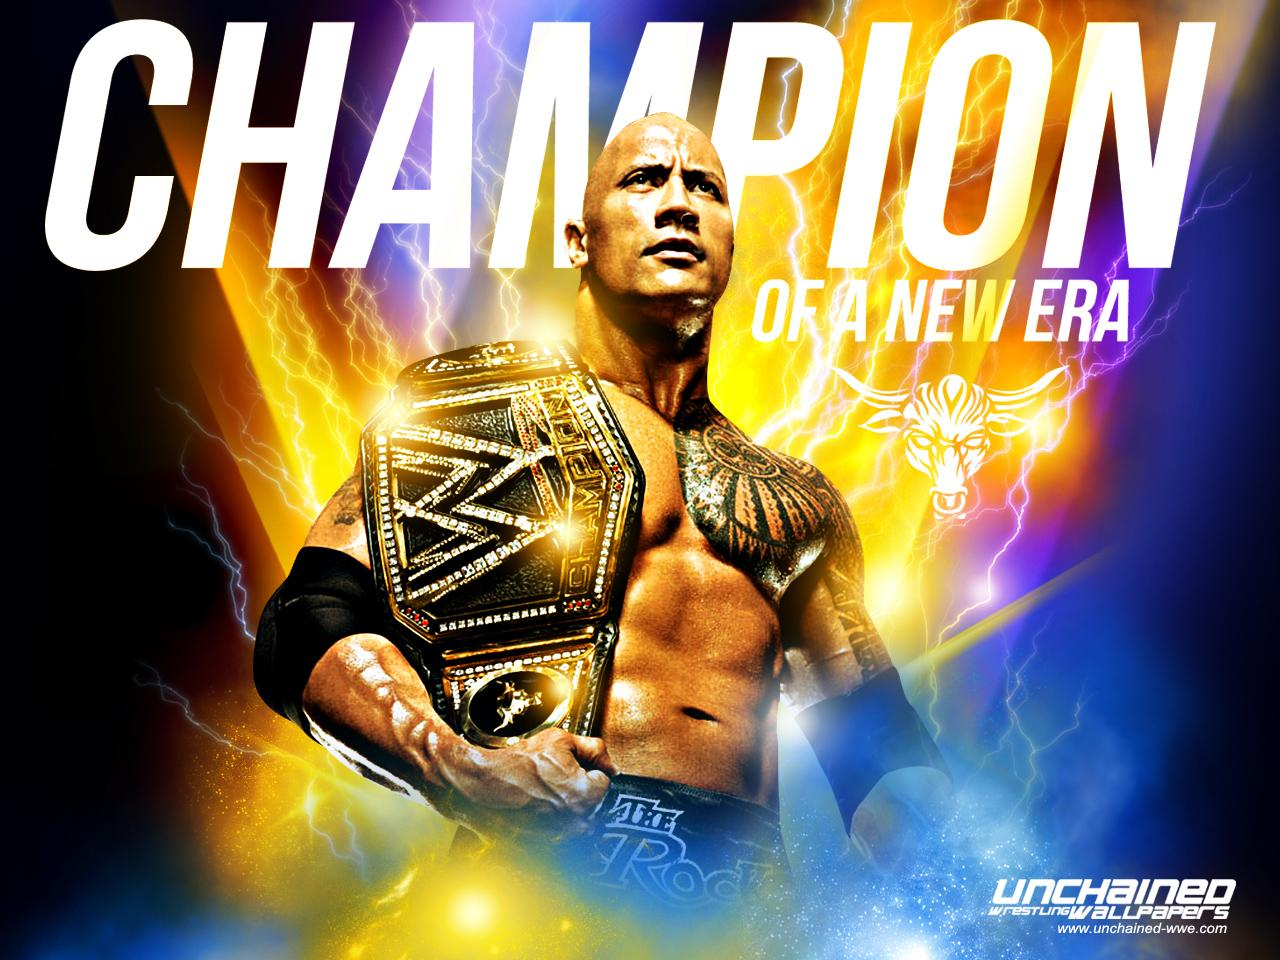 WWE image The Rock